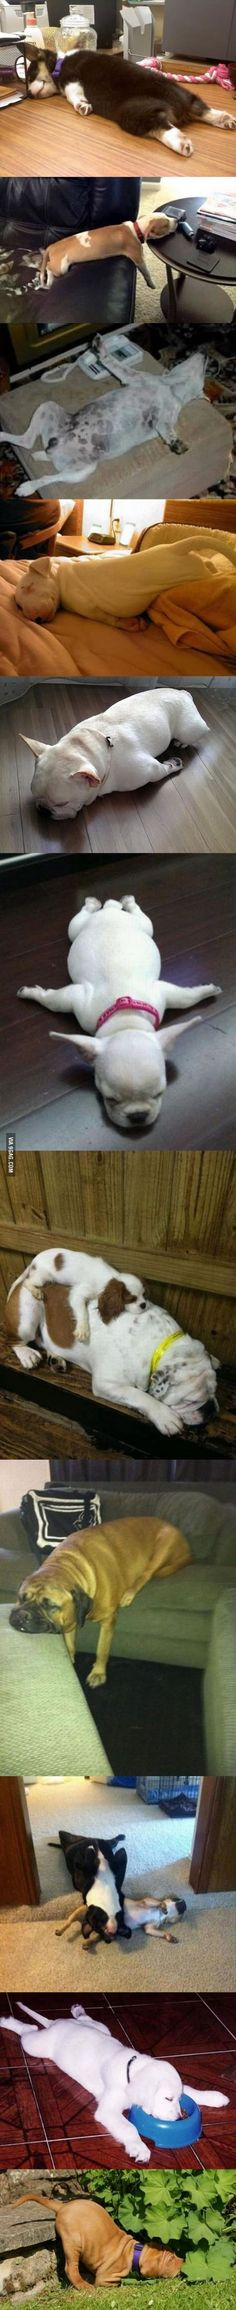 """So... here's what """"dog tired"""" looks like..."""